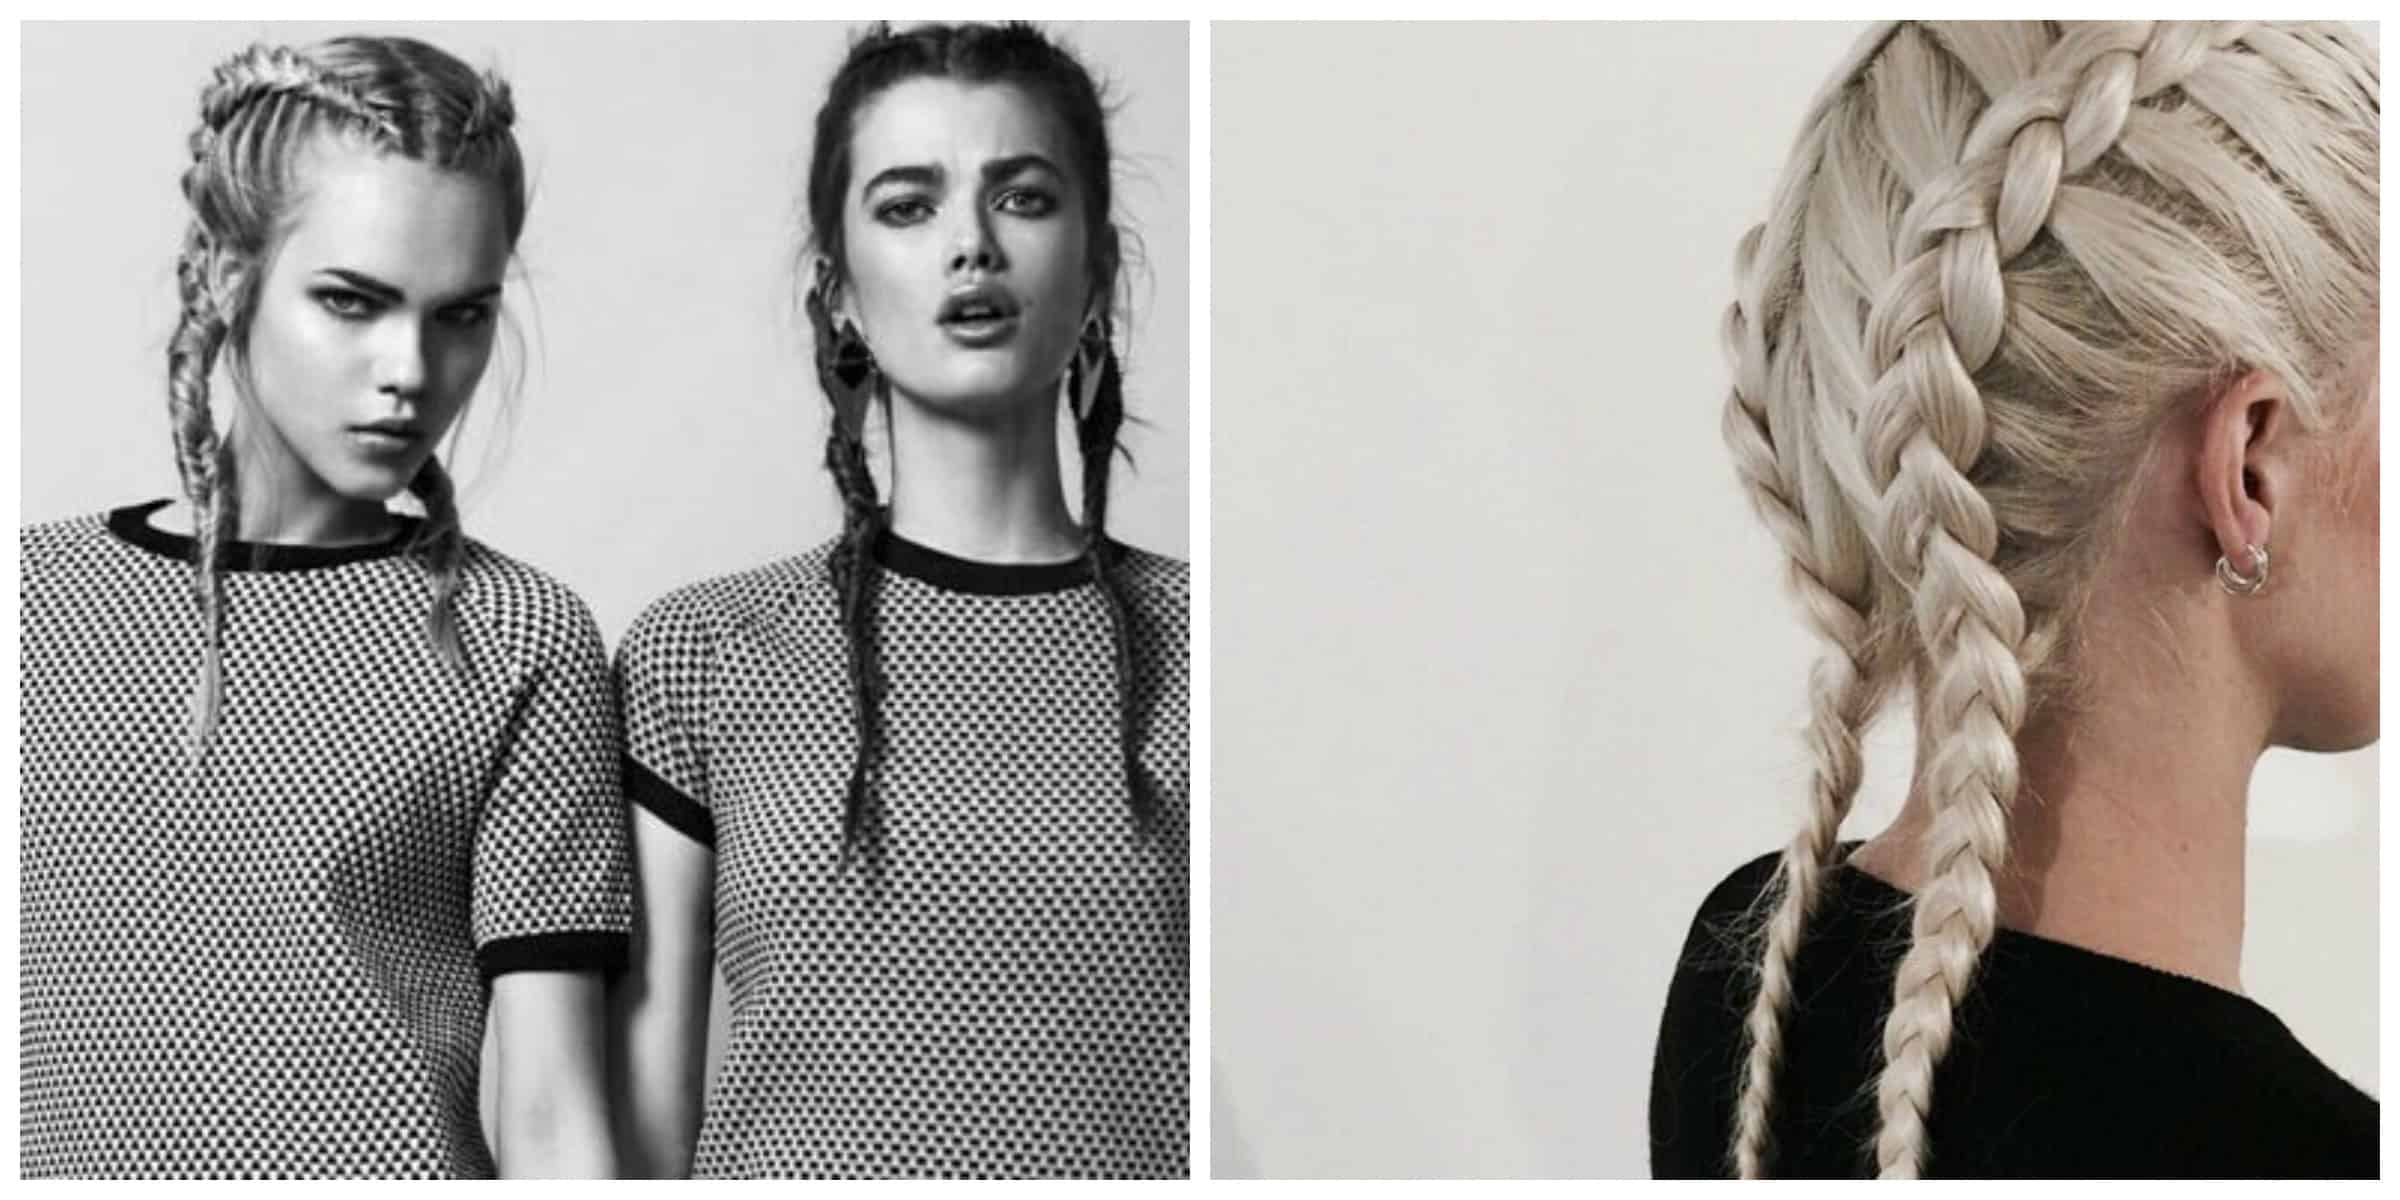 Braid Styles For White Hair Inspiration Boxer Braids The Hairstyle That's Taking Over  The Fashion Tag Blog